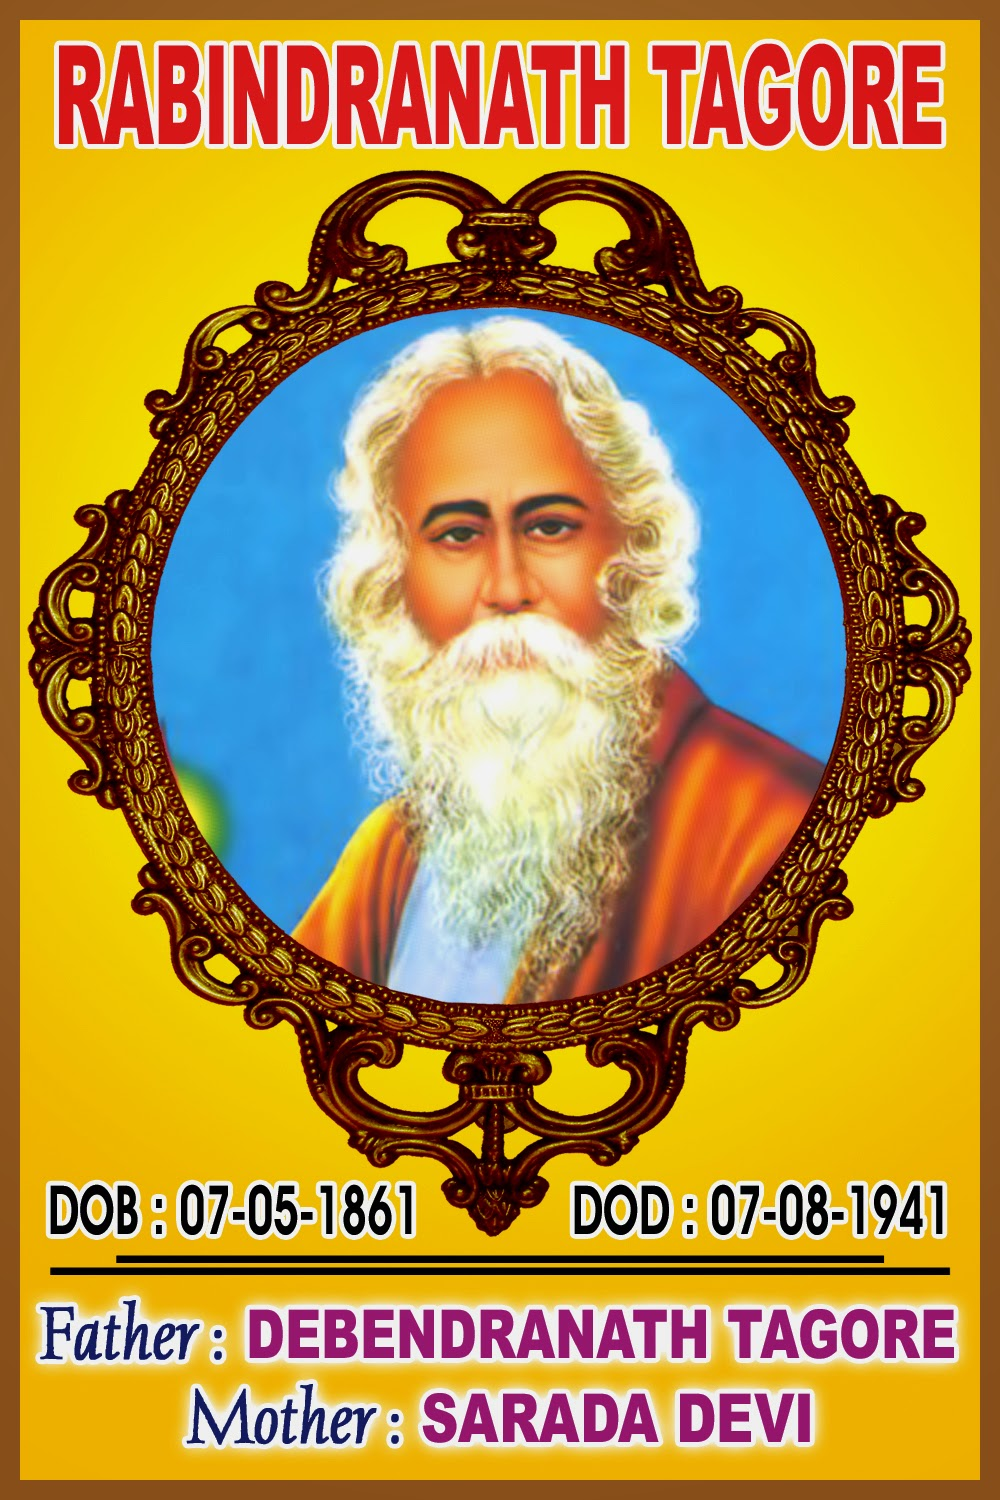 freedom-fighter-rabindranath-tagore-image-with-names-naveengfx.com